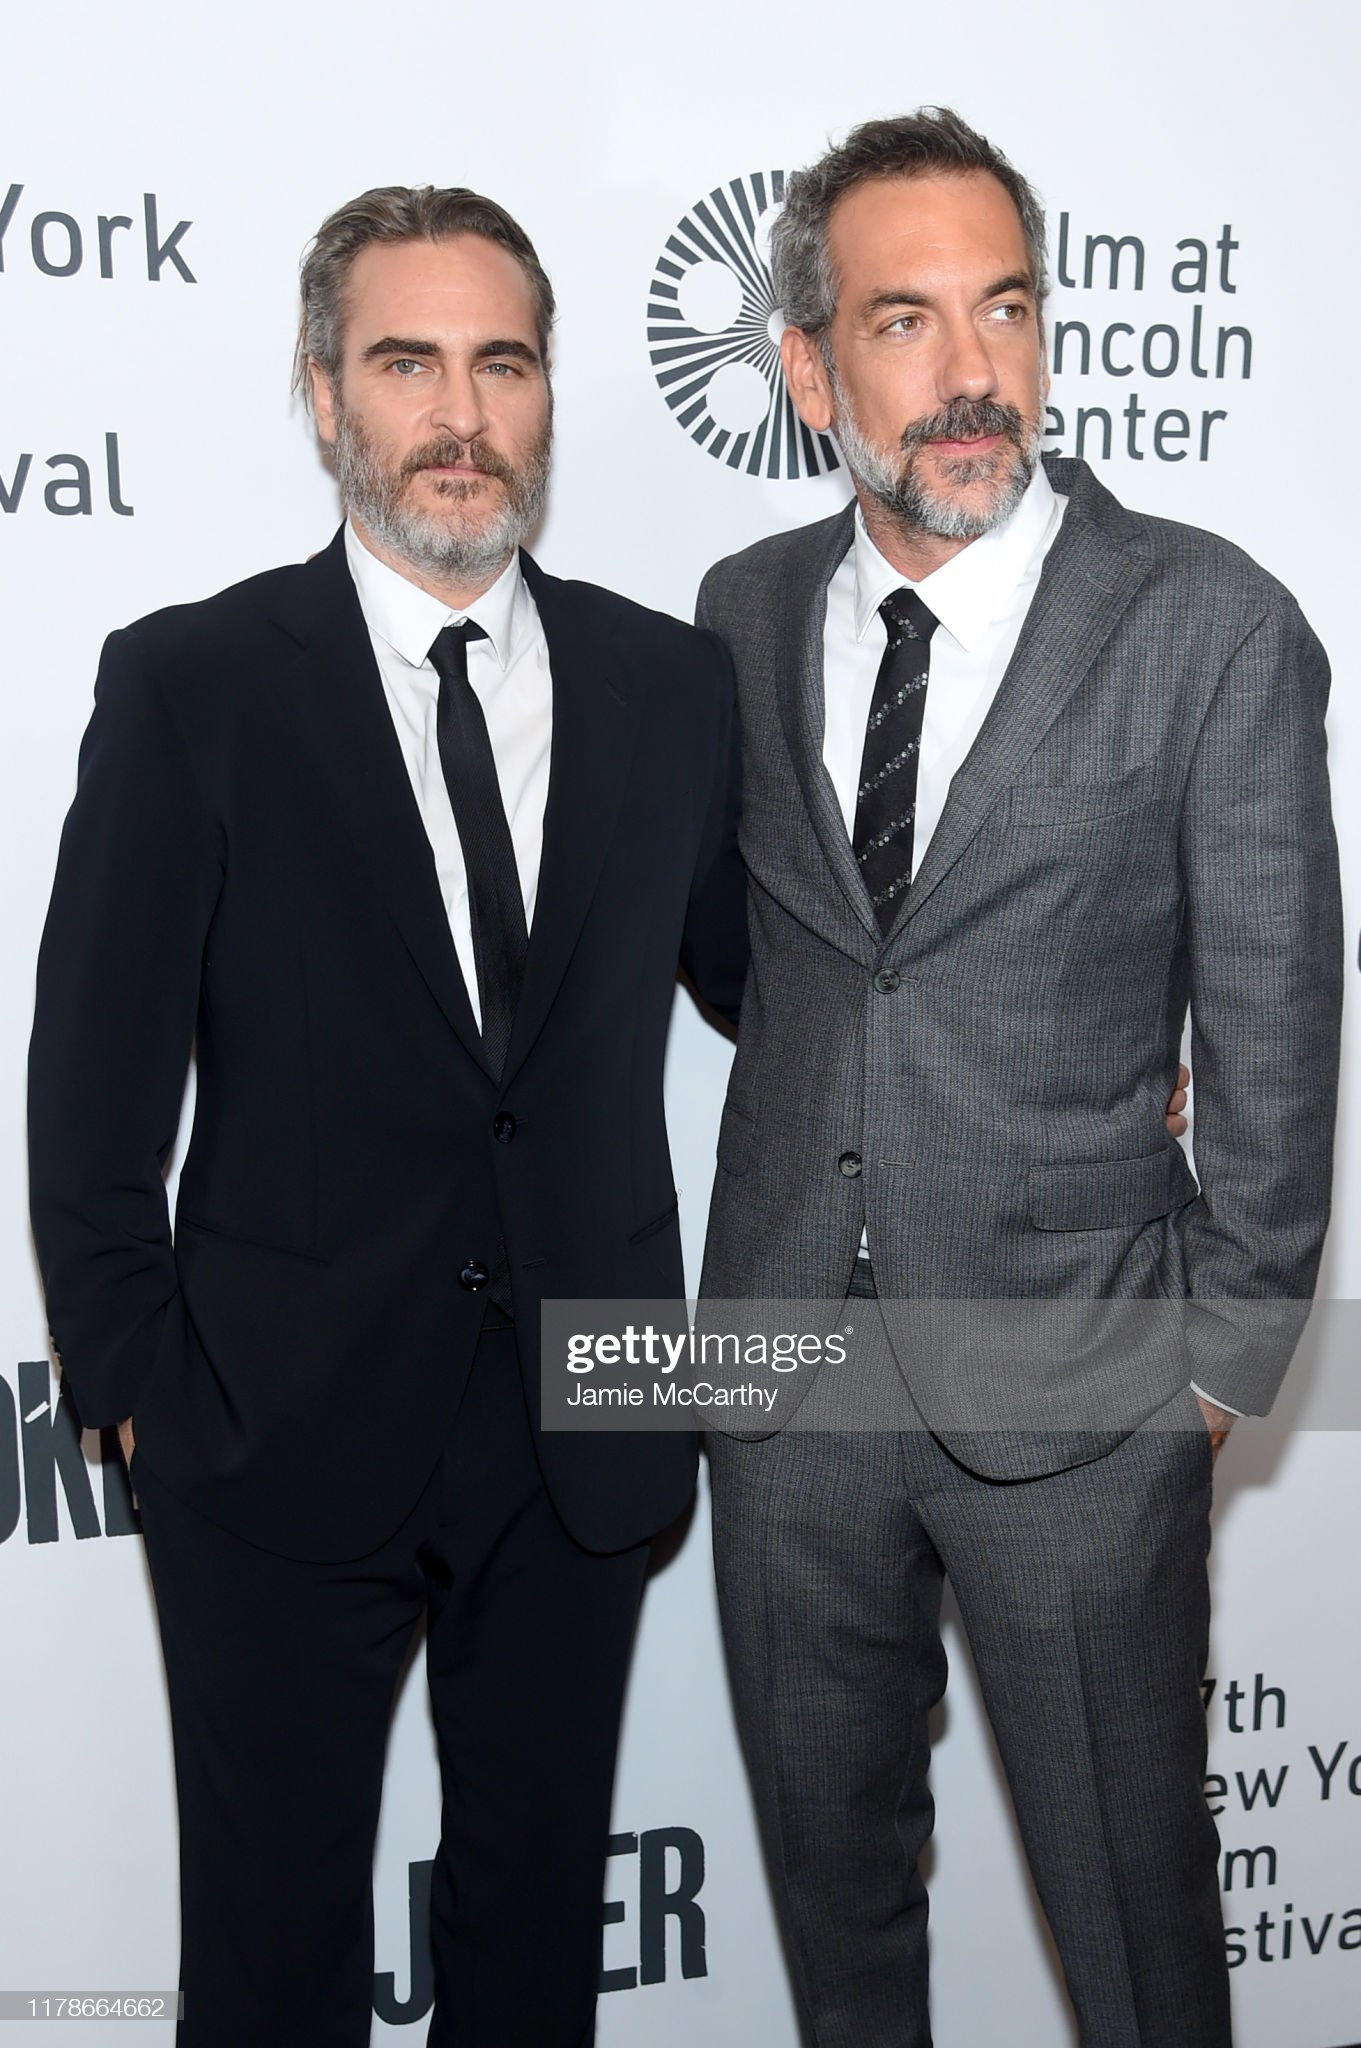 ¿Cuánto mide Joaquin Phoenix? - Altura - Real height Joaquin-phoenix-and-todd-phillips-attend-the-57th-new-york-film-at-picture-id1178664662?s=2048x2048